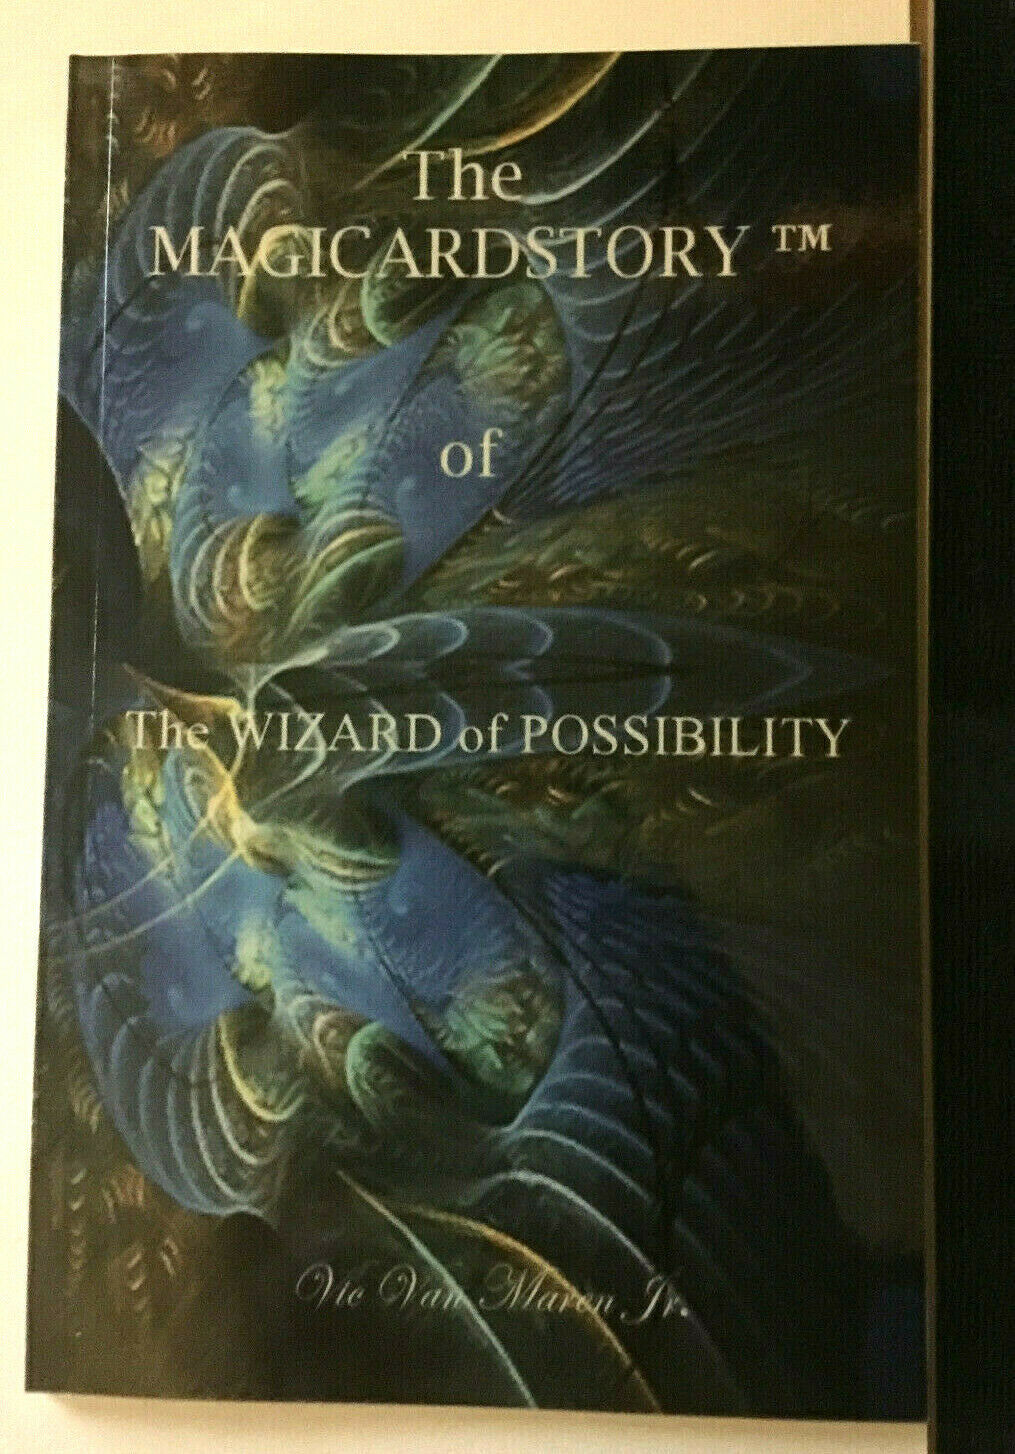 Primary image for BOOK SOFTCOVER MAGICARDSTORY™ THE WIZARD OF POSSIBILITY